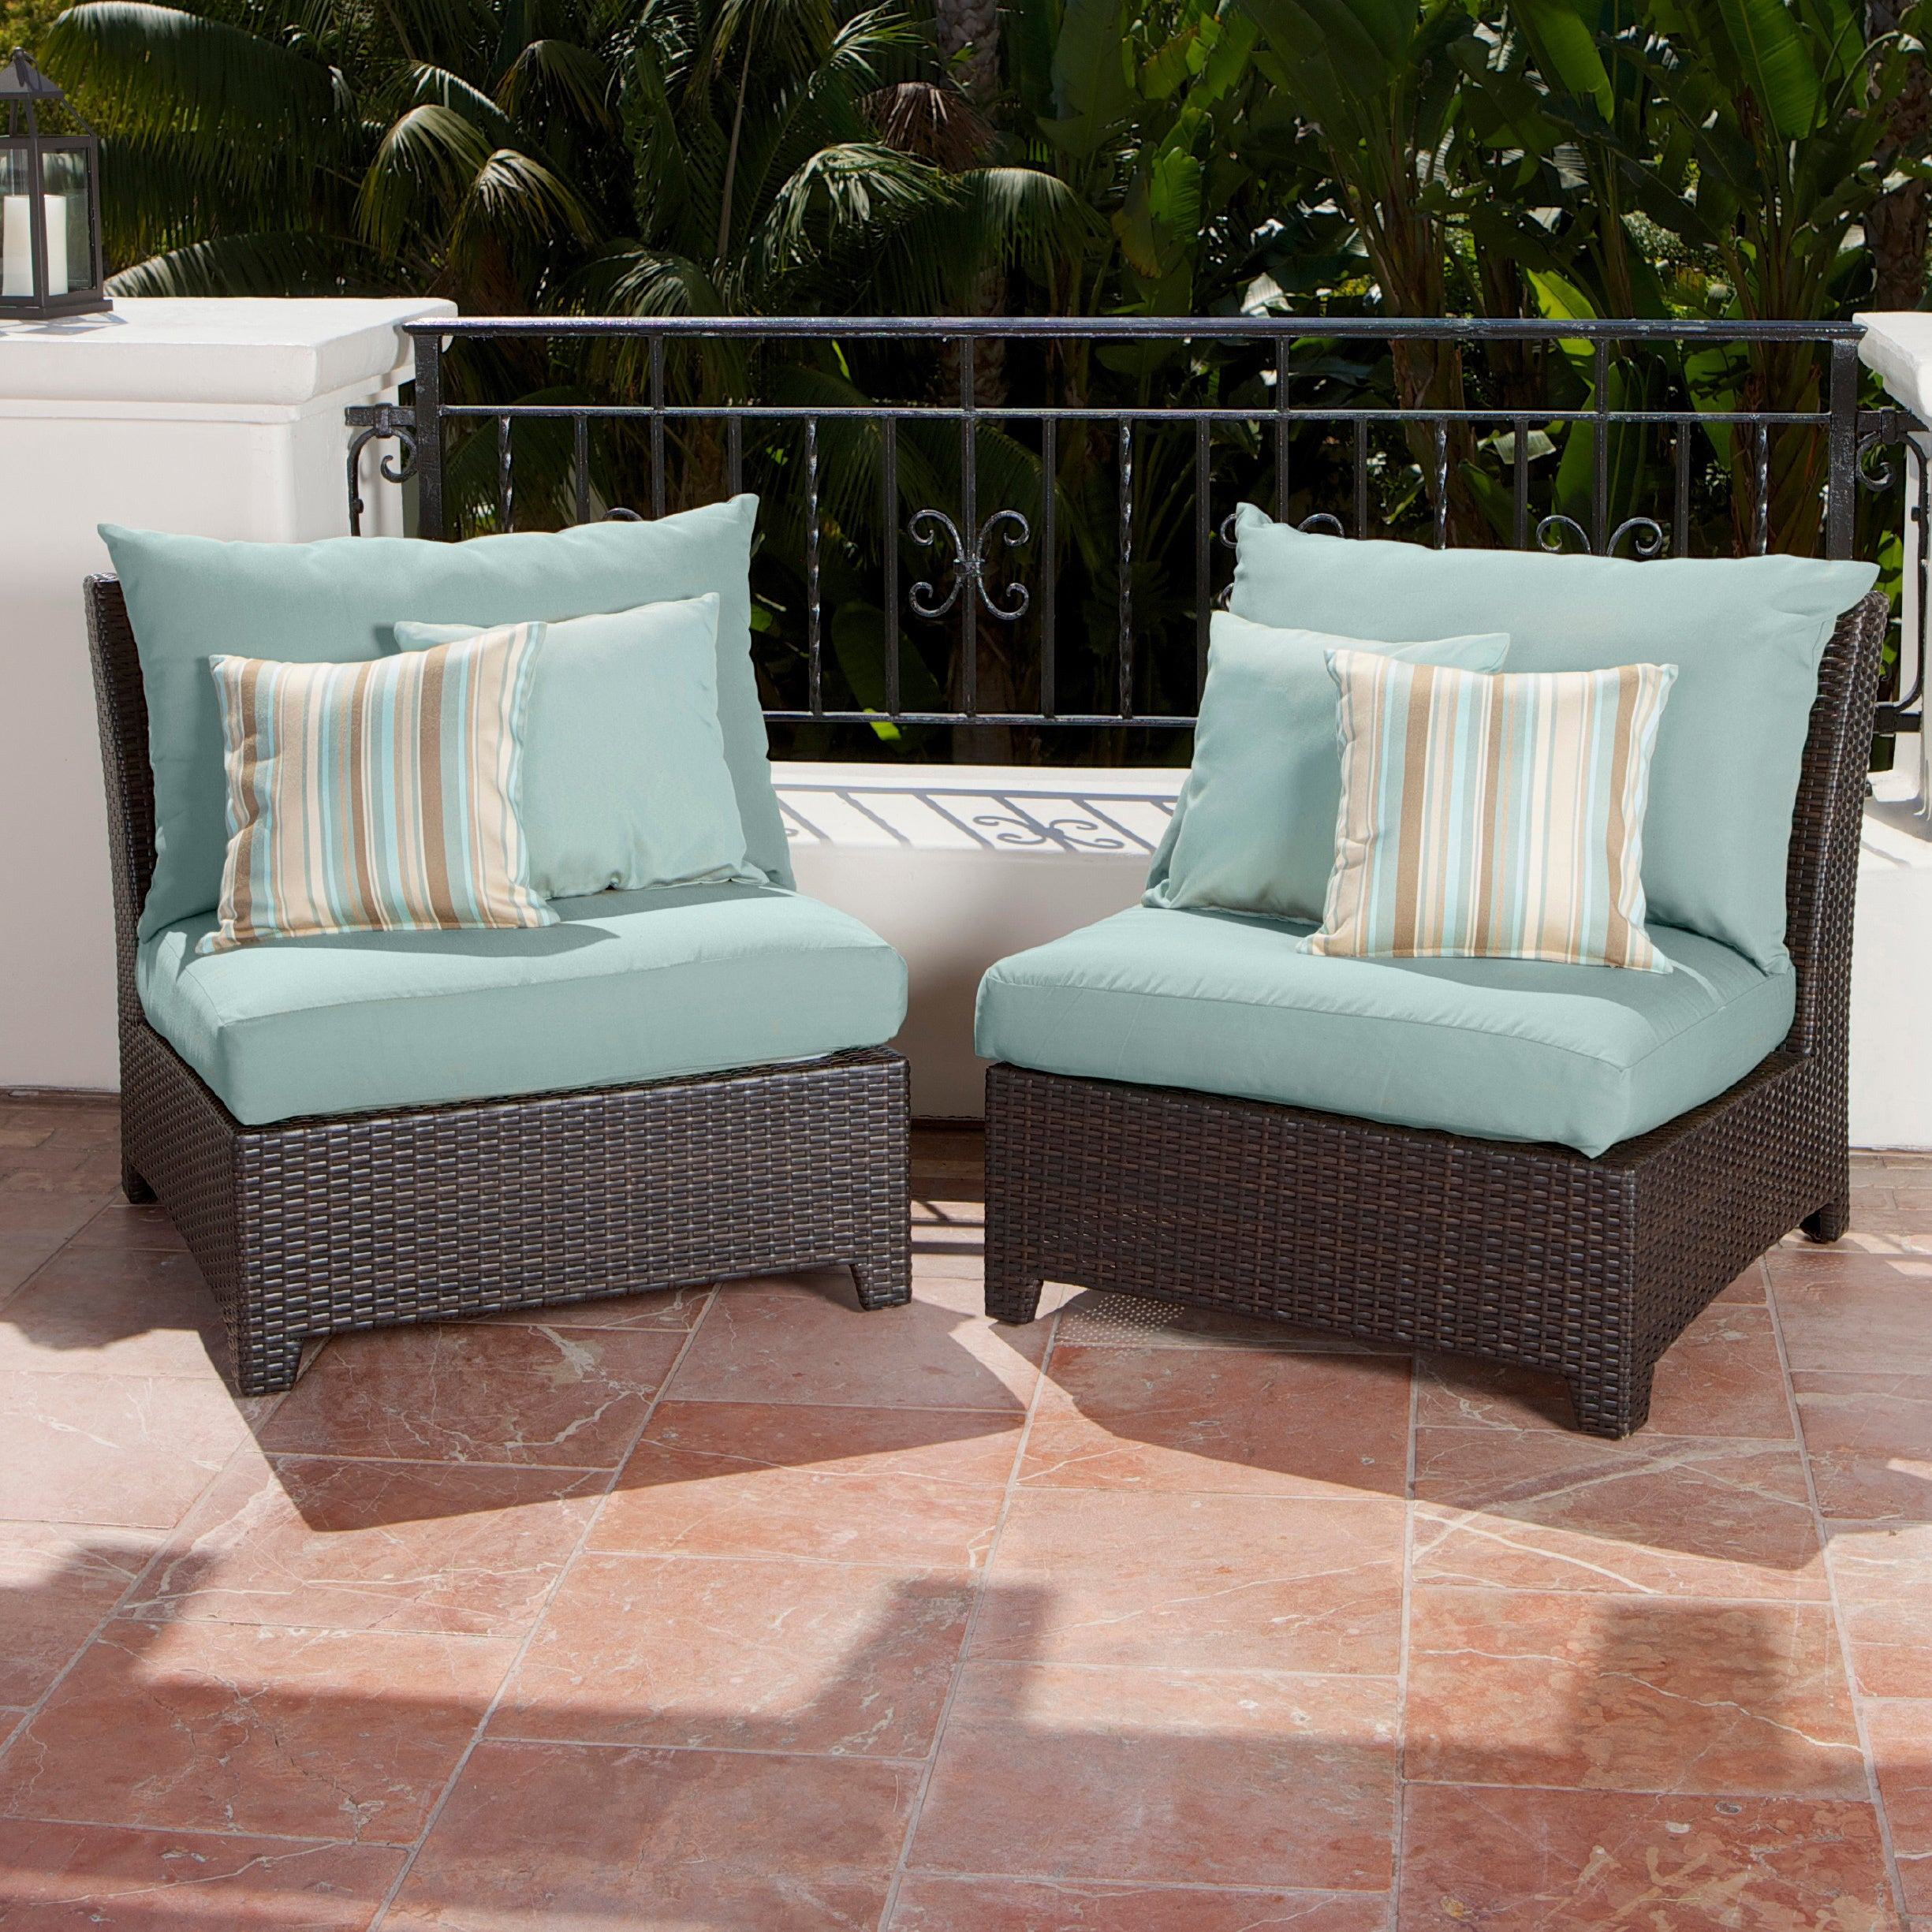 RST Brands Bliss Patio Furniture Armless Chairs Set of 2 Free